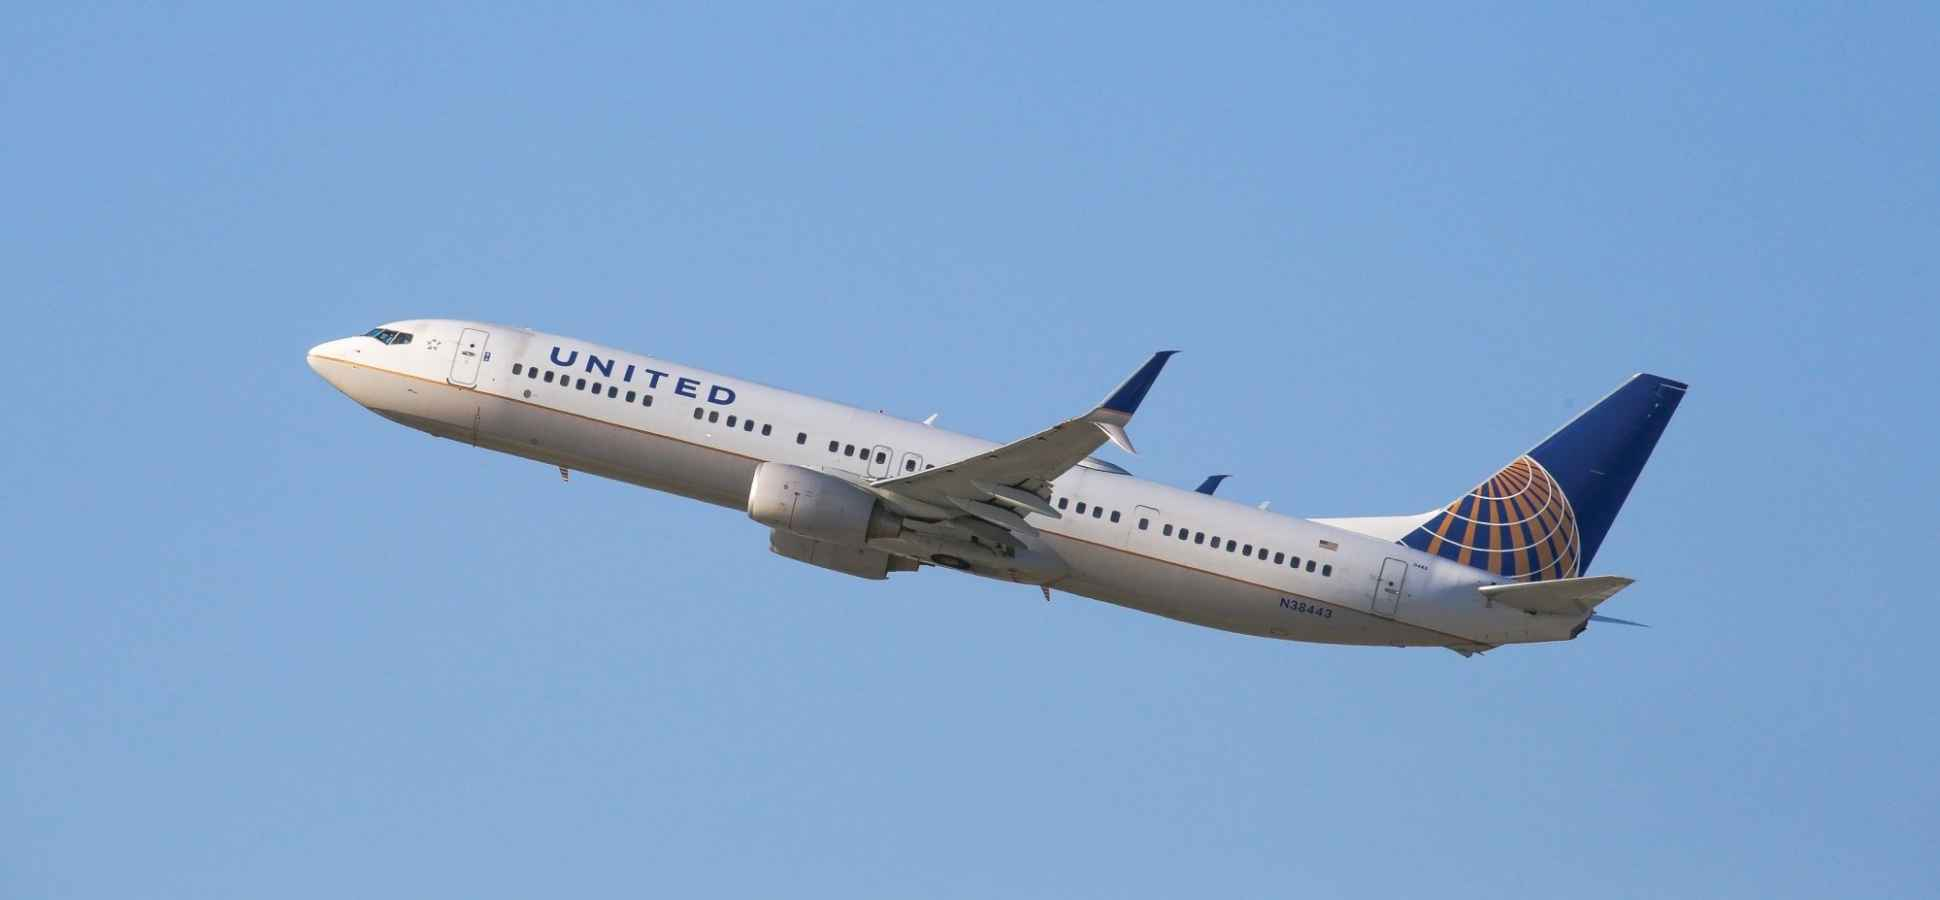 United Airlines Just Announced a Brand New Way to Make Economy Passengers Uncomfortable